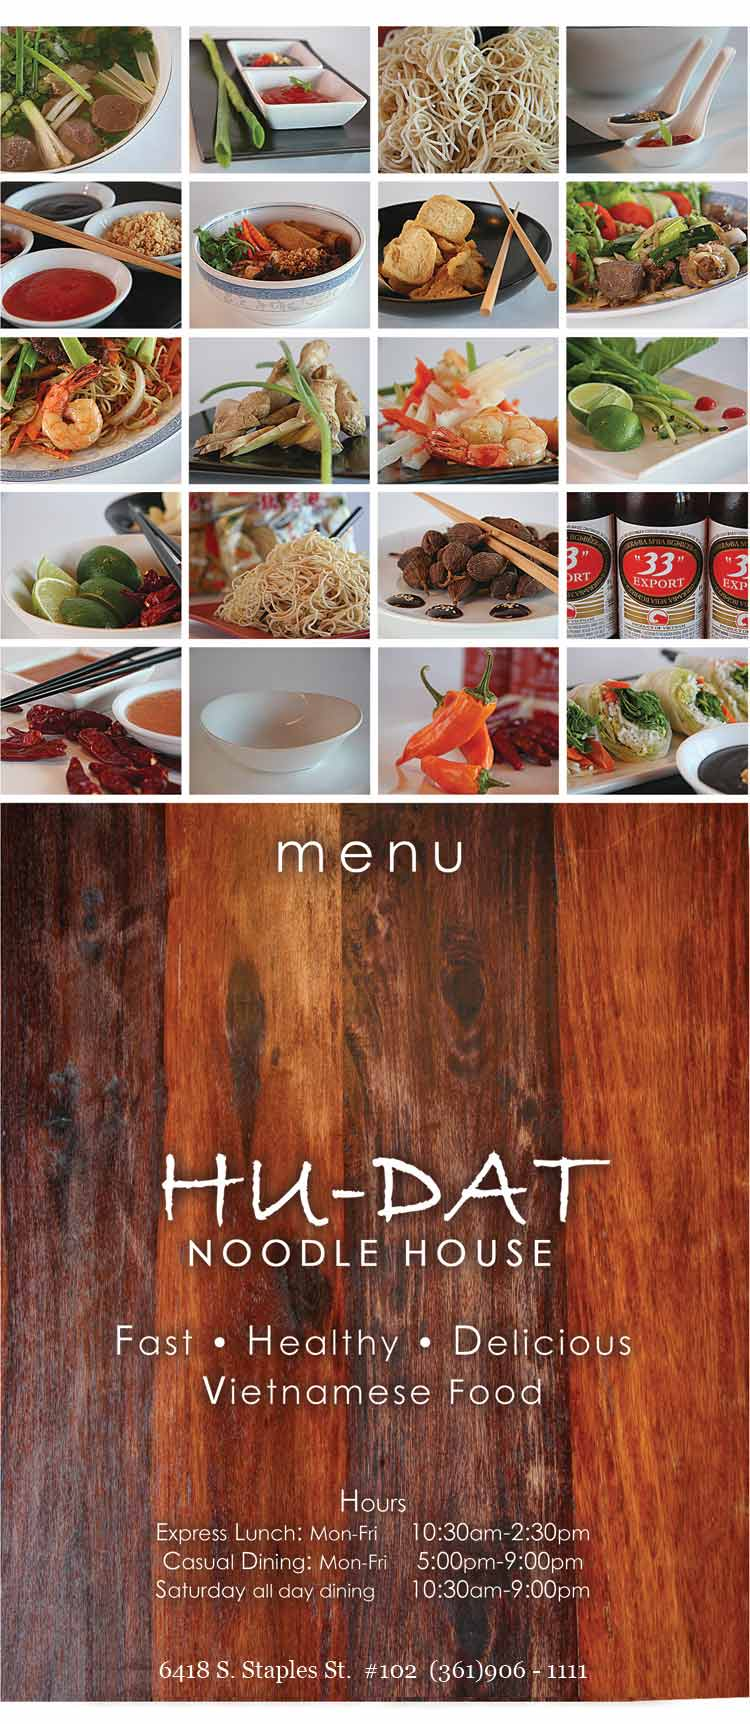 Hu-Dat Noodle House Corpus Christi Restaurant Coastal Bend Menu Guide